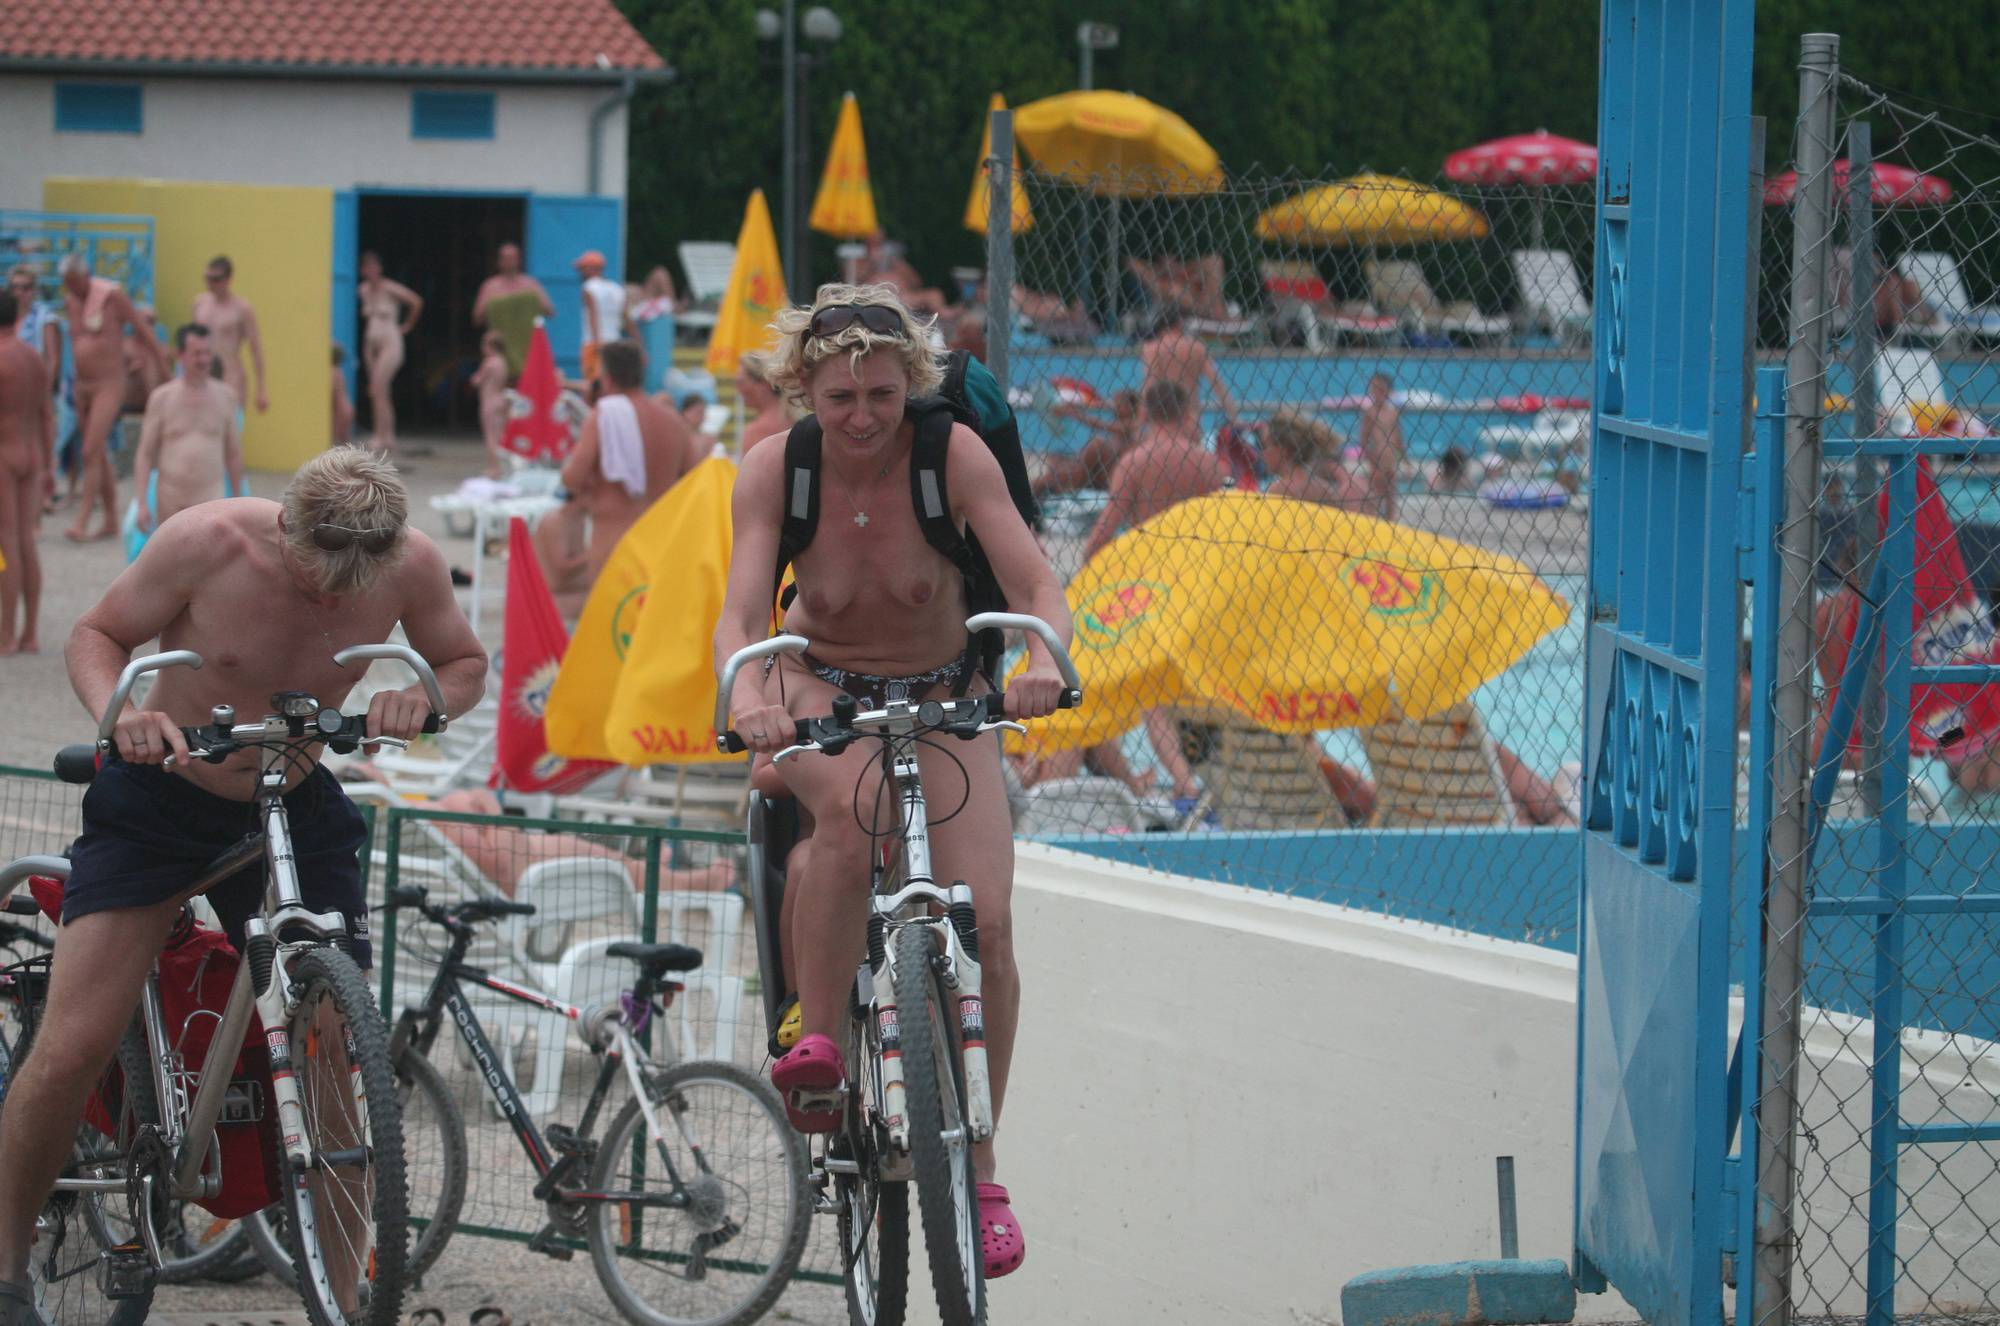 Nudist Photos Naturist Pool Biking Exits - 1